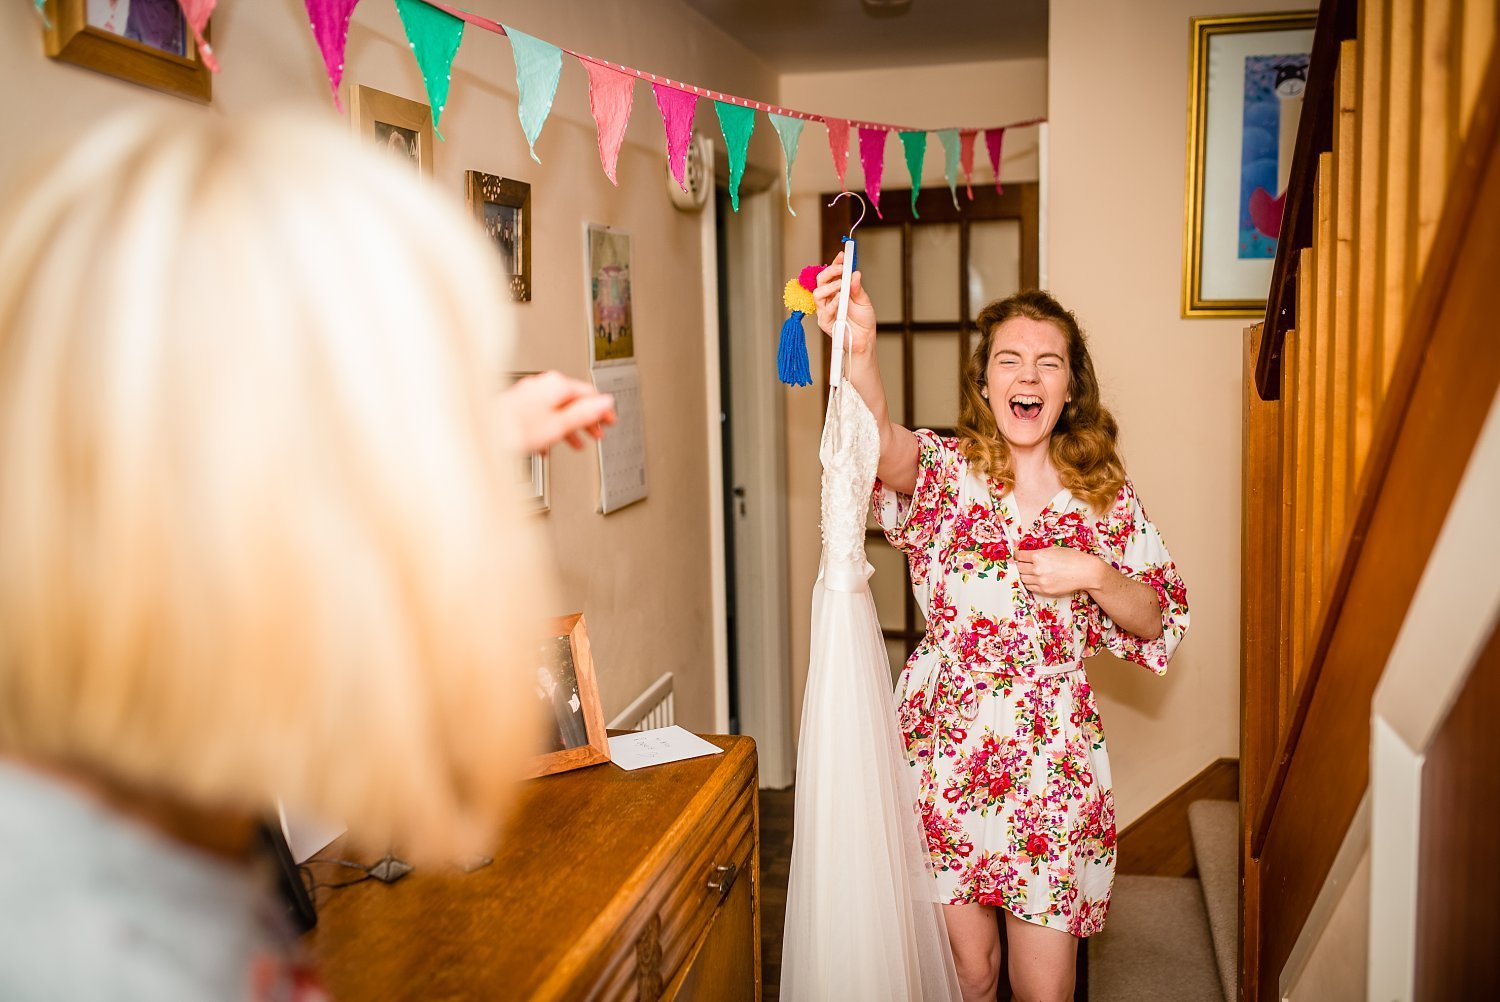 Farnham Wedding Photographer - bride to be is carrying her dress and laughing